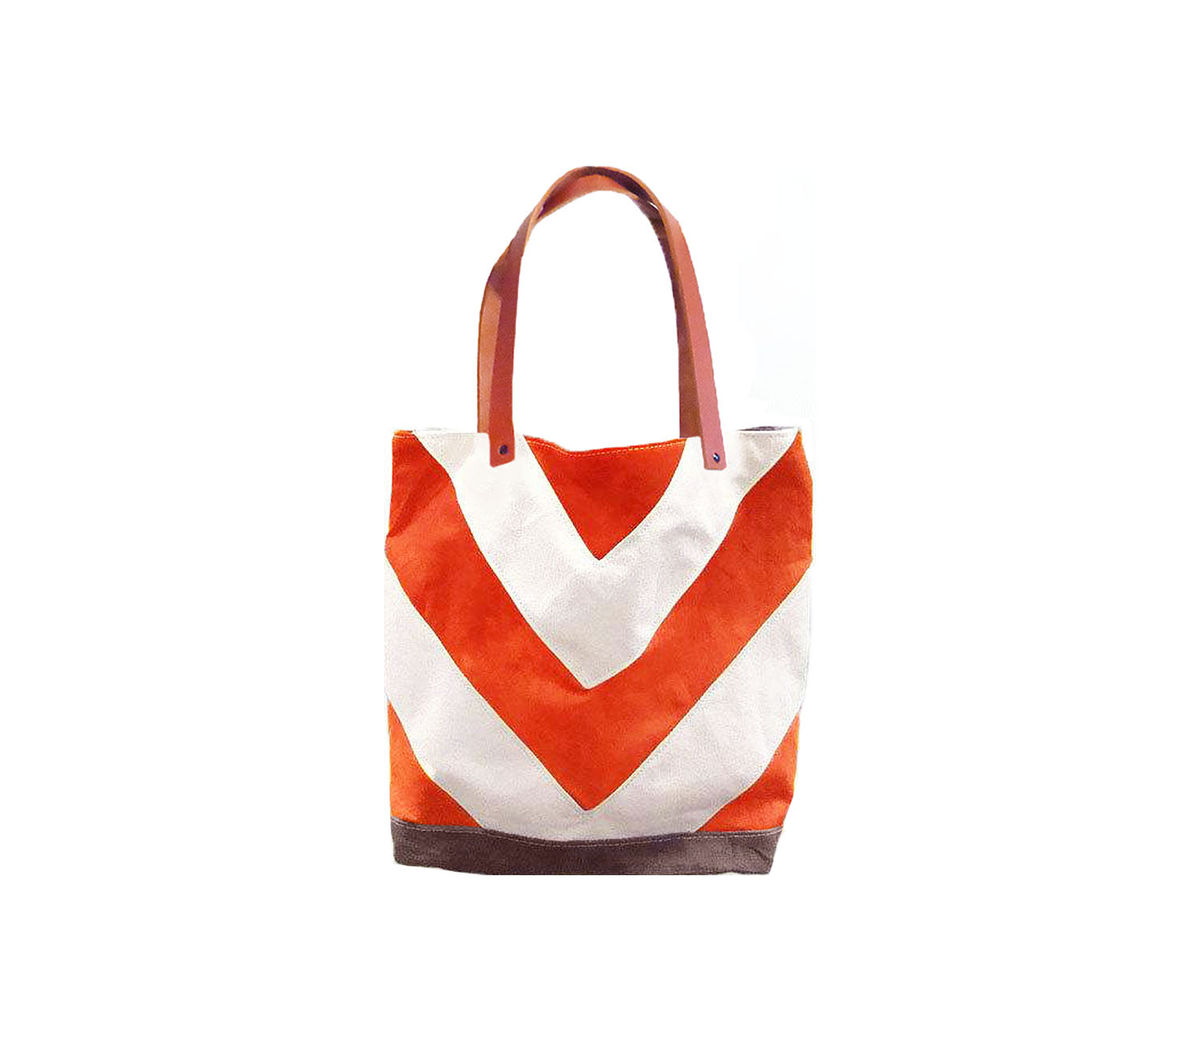 Chevron Tote City Market w/ Leather Straps in Tequila - product images  of